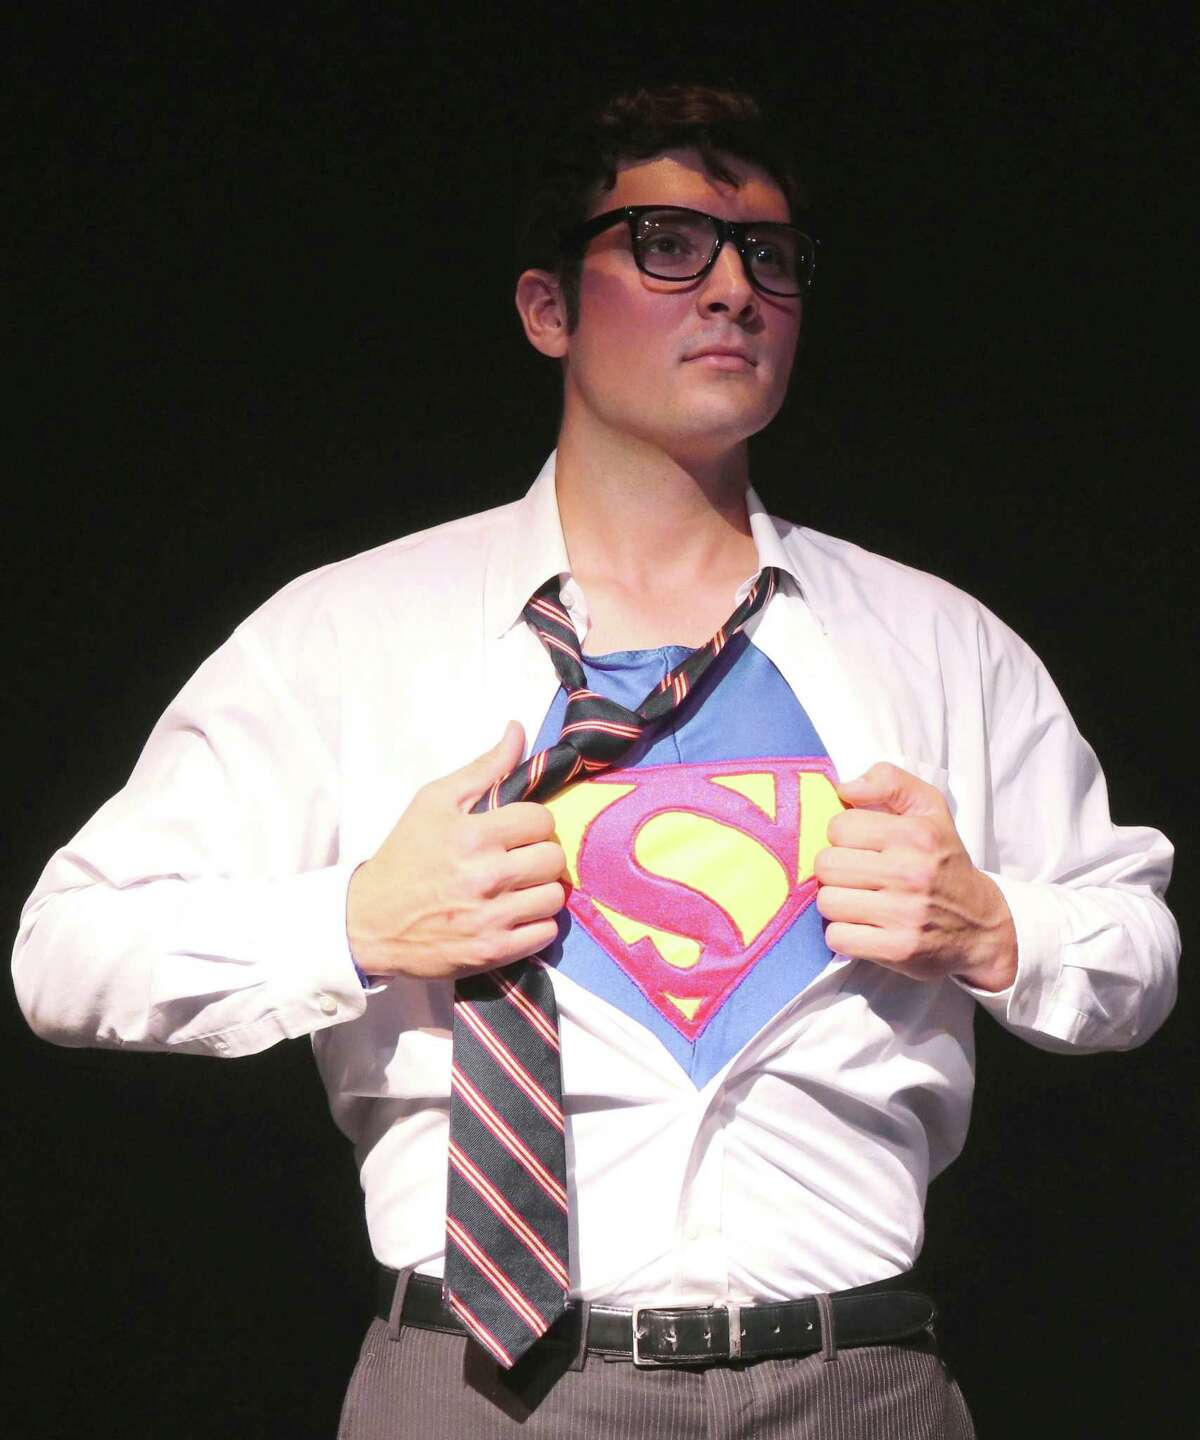 """John Schule portrays Clark Kent and Superman in """"Superman, the Musical,"""" at Curtain Call's Kweskin Theatre in Stamford, June 1-30. (But don't tell Lois Lane.)"""